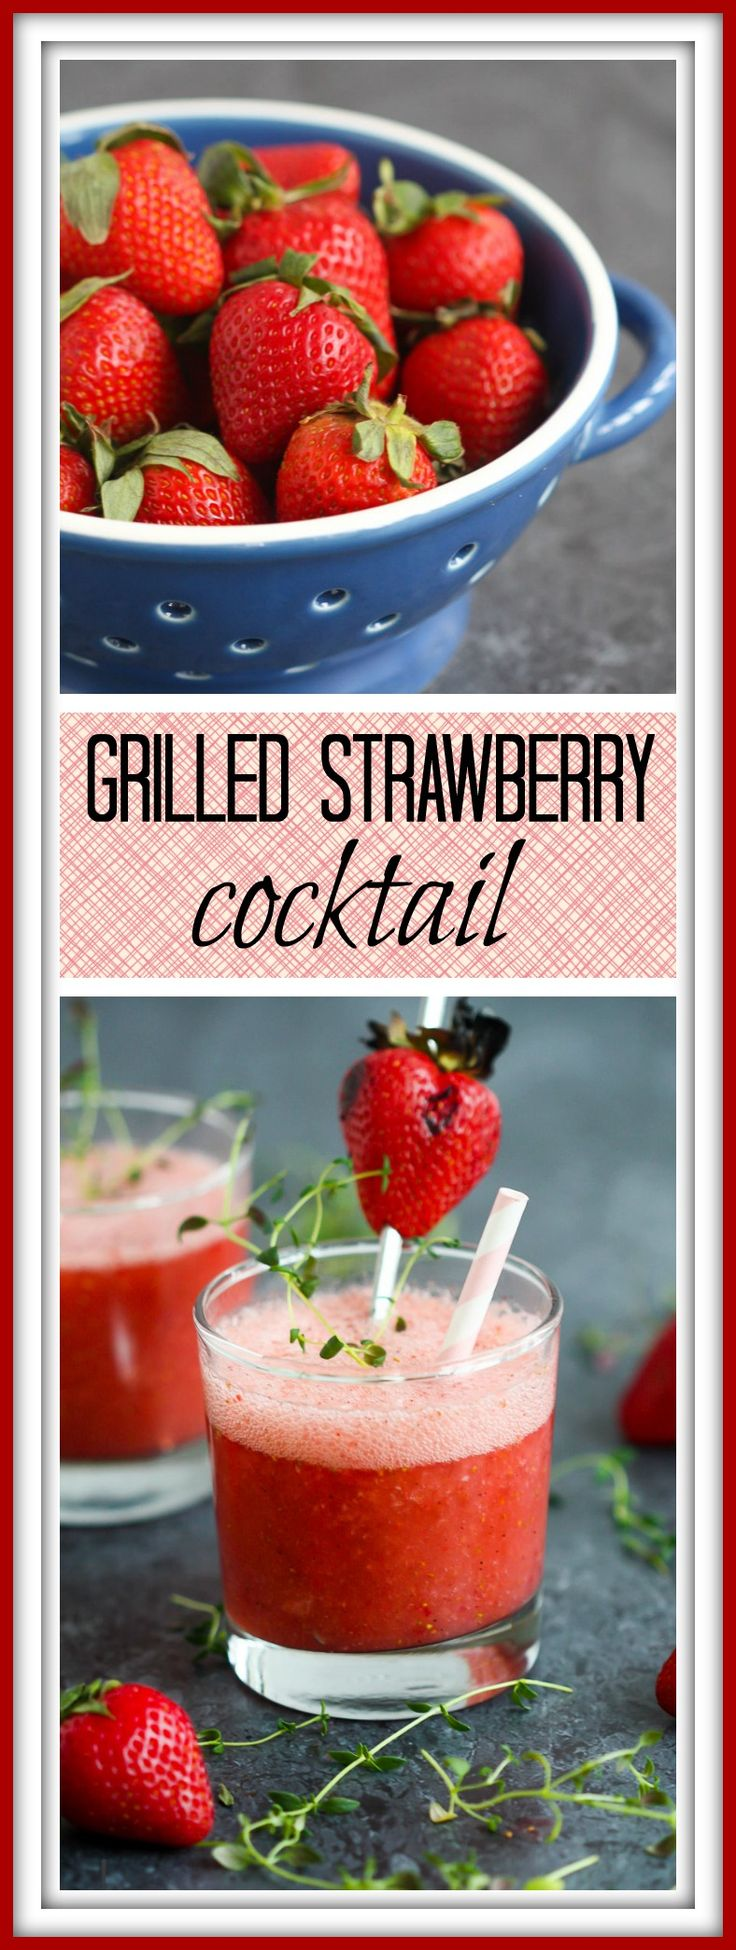 Slurp up this grilled strawberry cocktail sweetened with a lime/thyme simple syrup. Summertime in a glass!